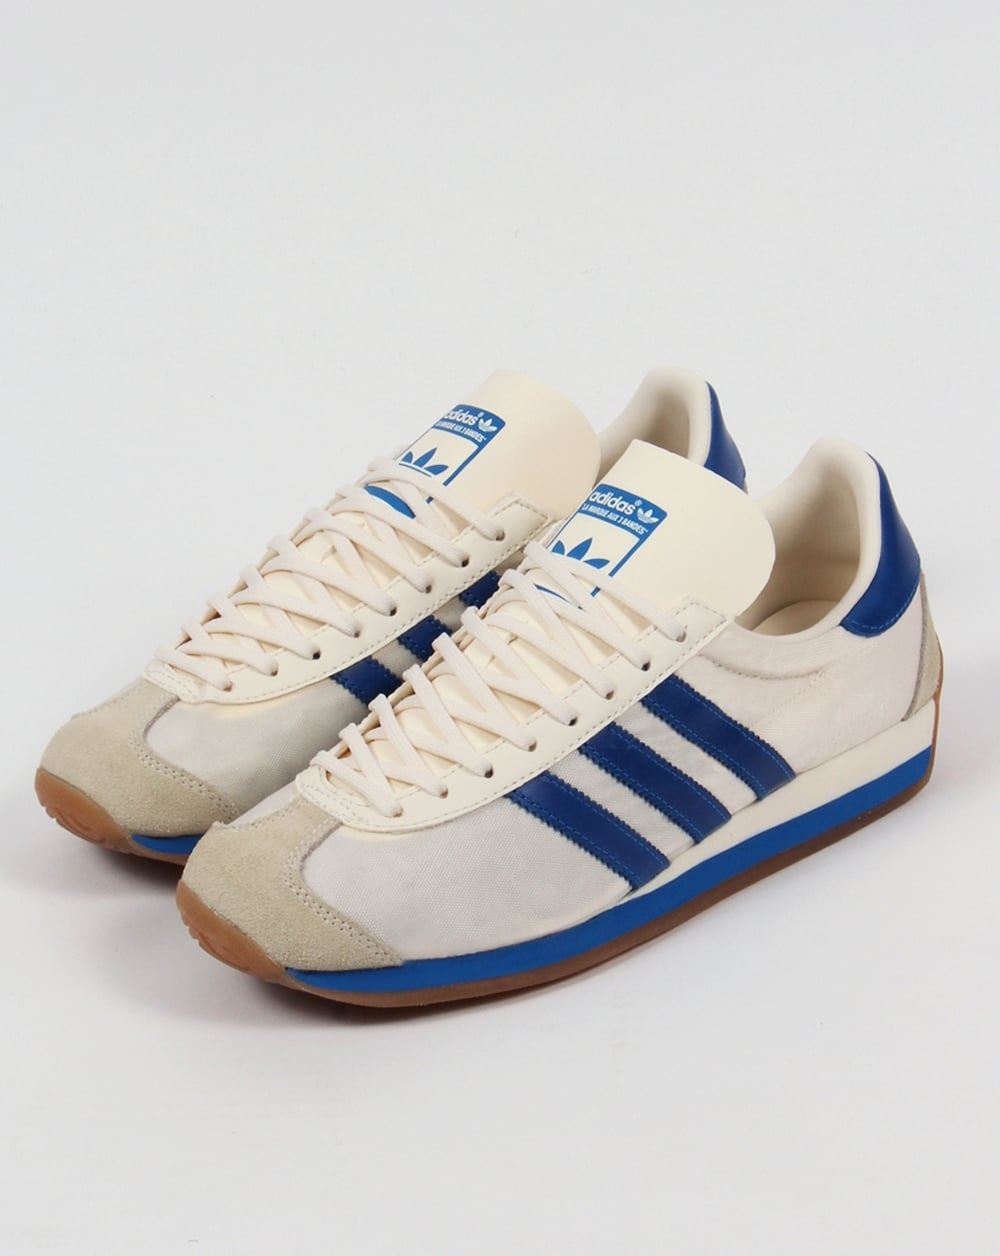 Adidas France Shoes Sjopping